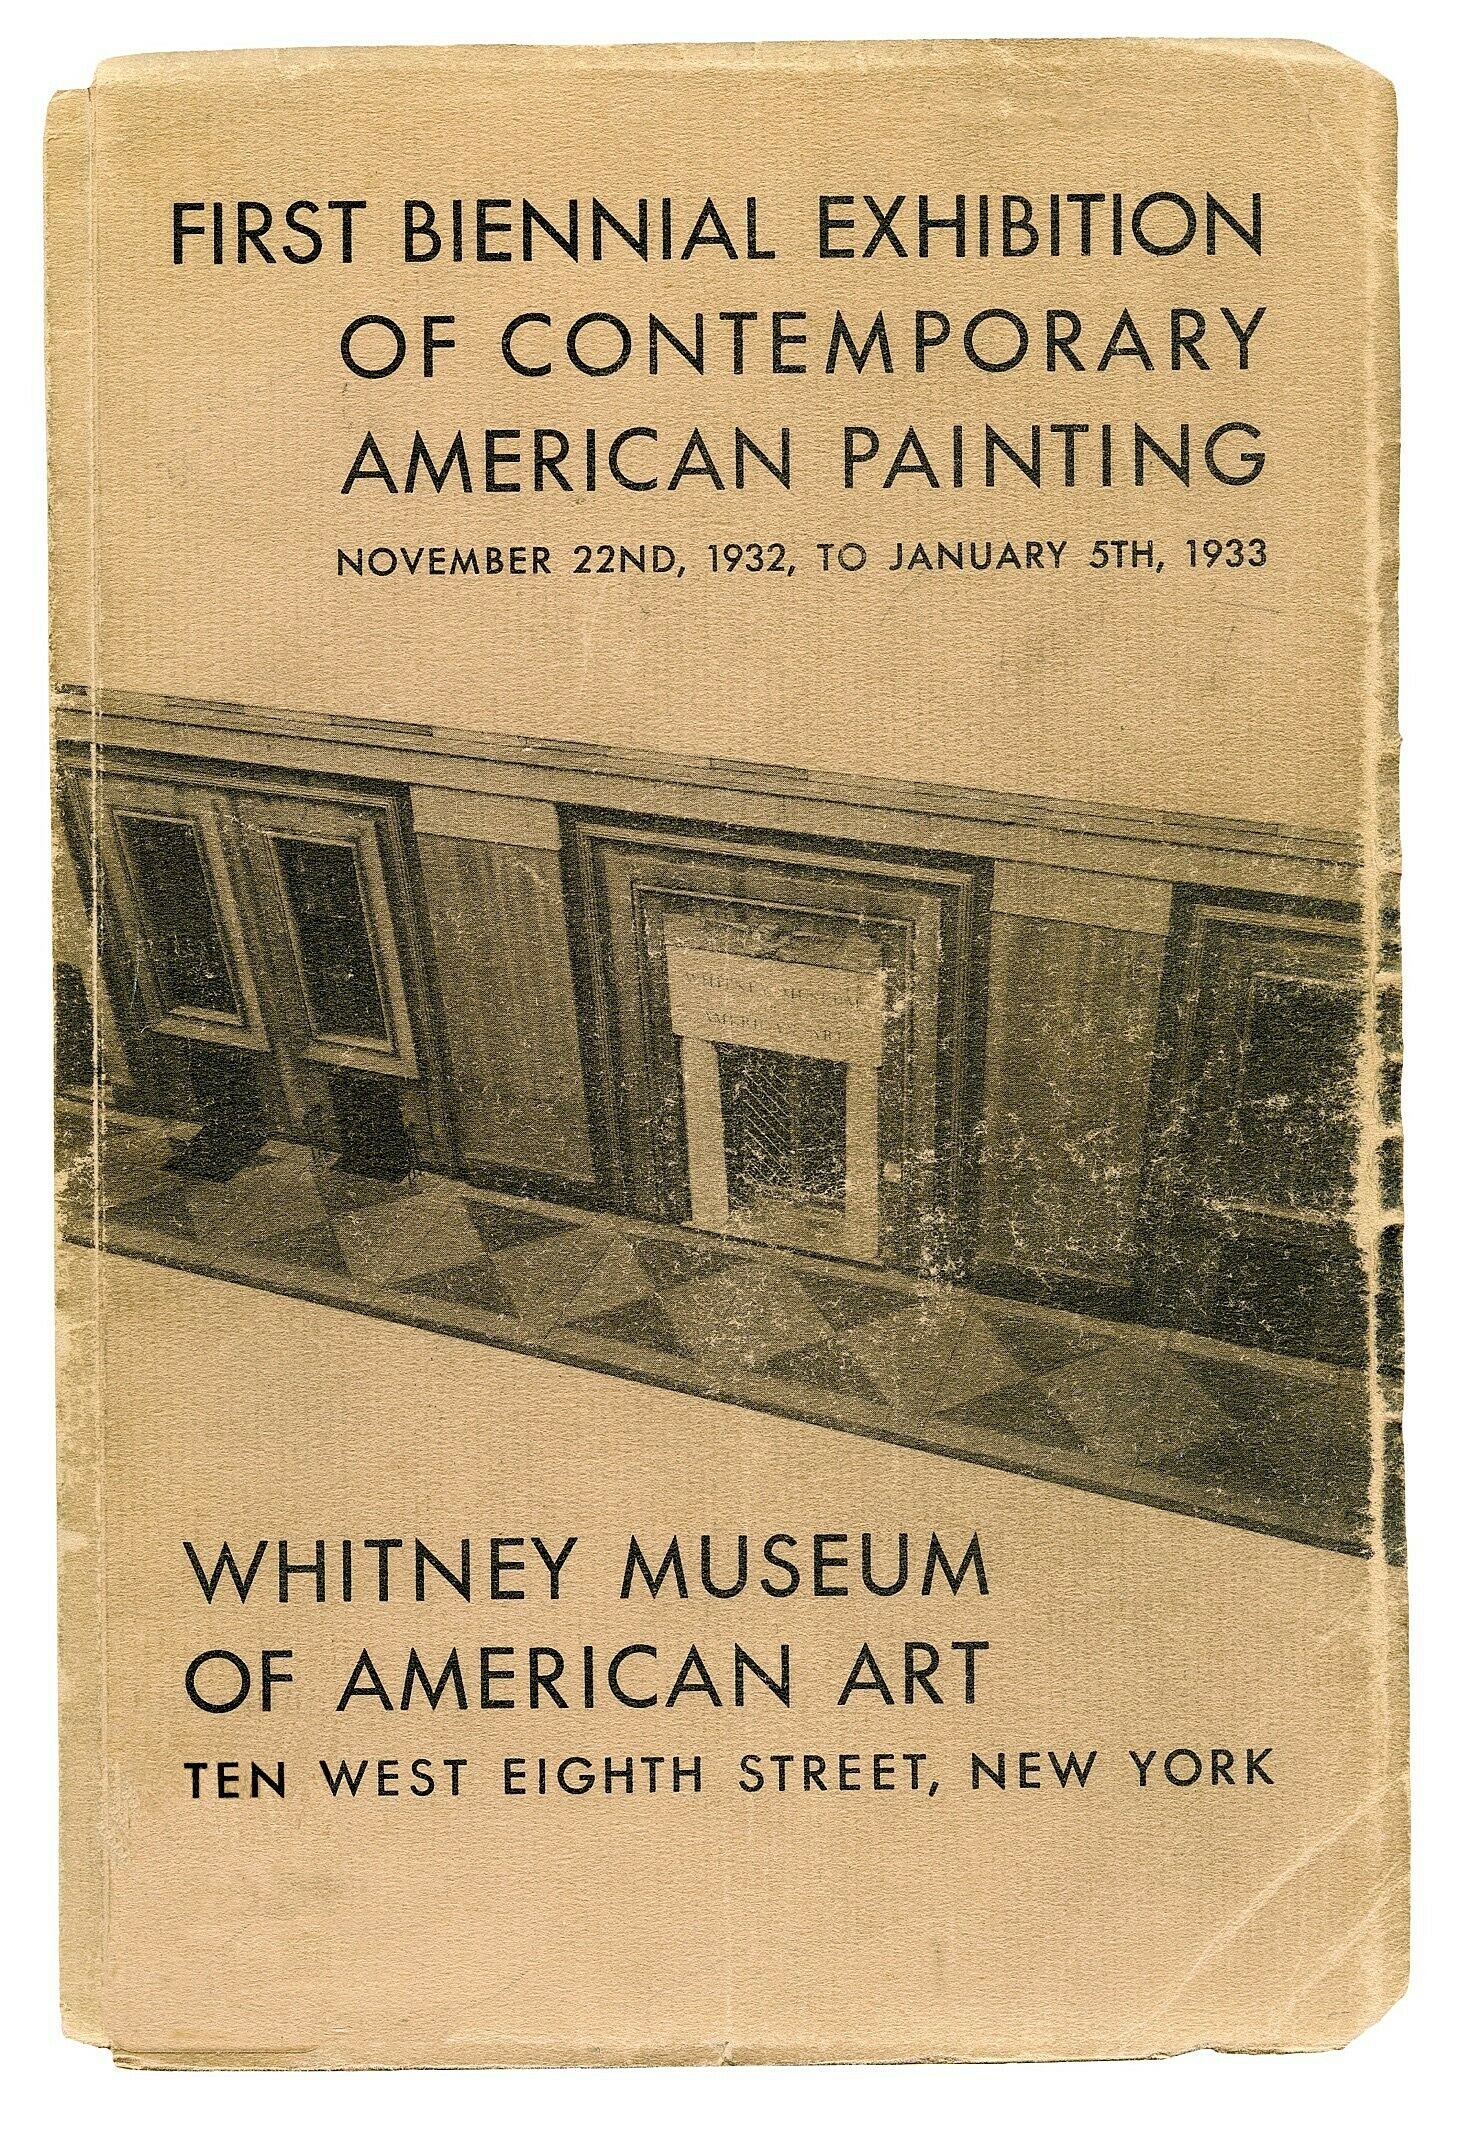 A photo of the 1932 Whitney Biennial exhibition catalogue